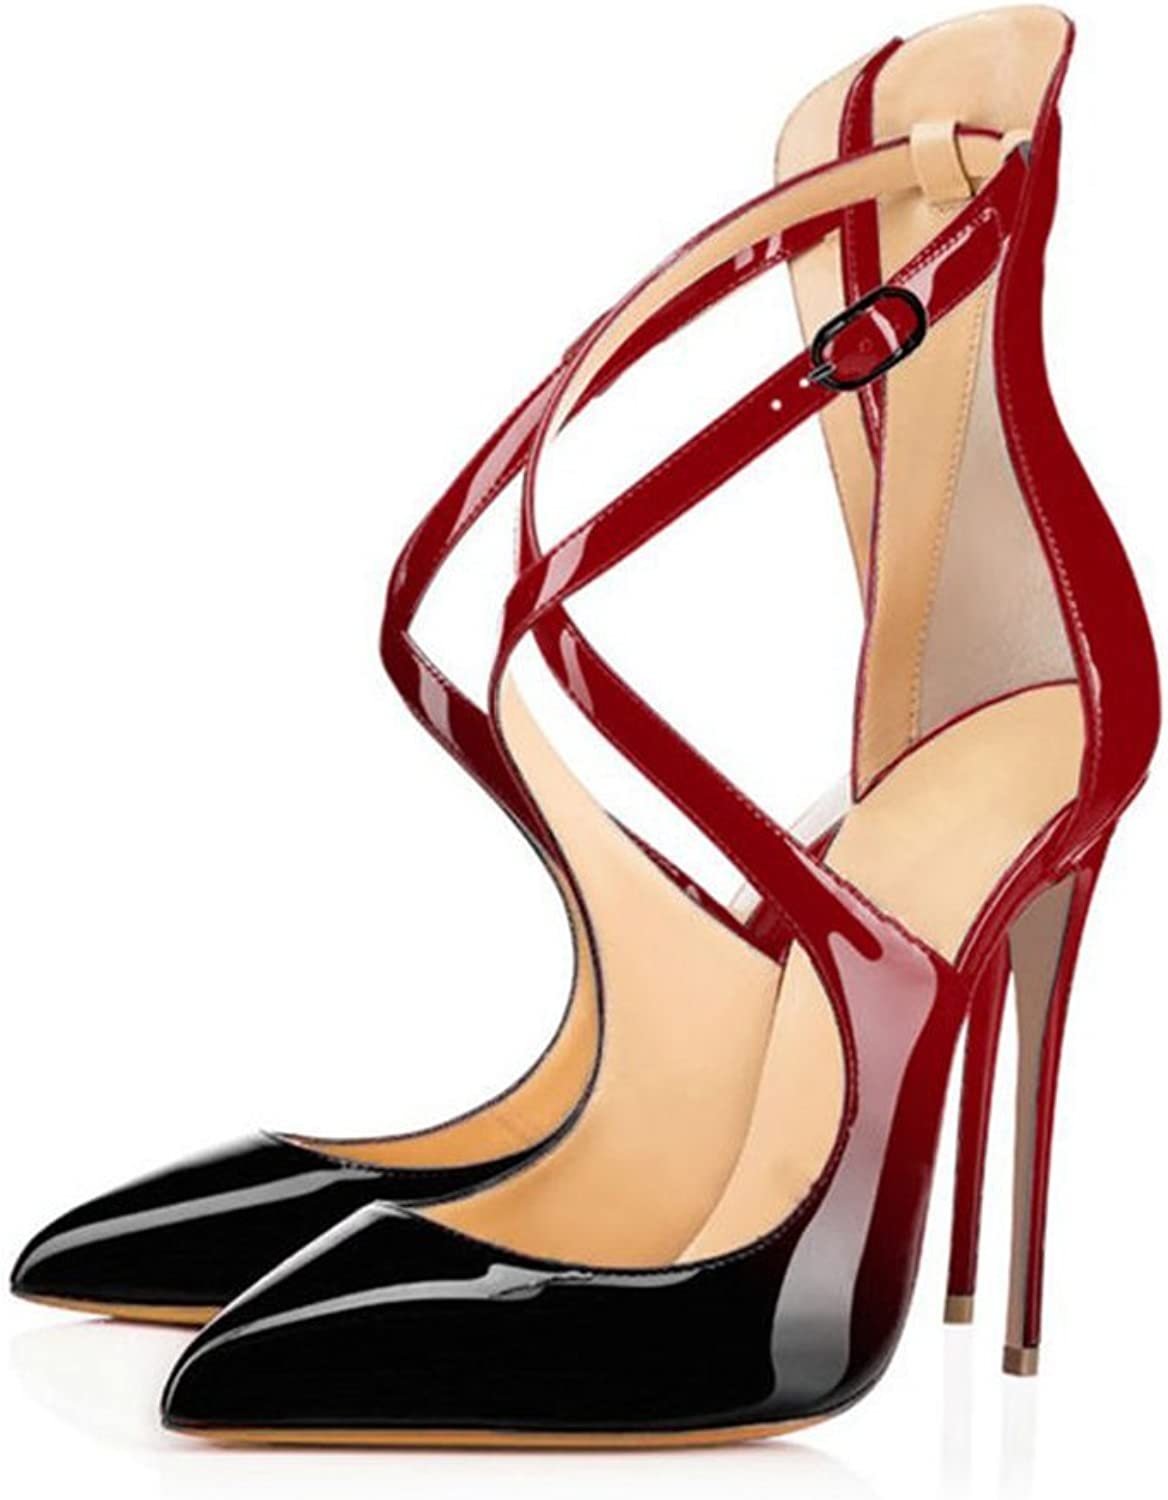 UMEXI Pointed Toe High Heels Ankle Criss Cross Strap Sandals Stiletto Pumps Wedding Party Dress shoes for Women